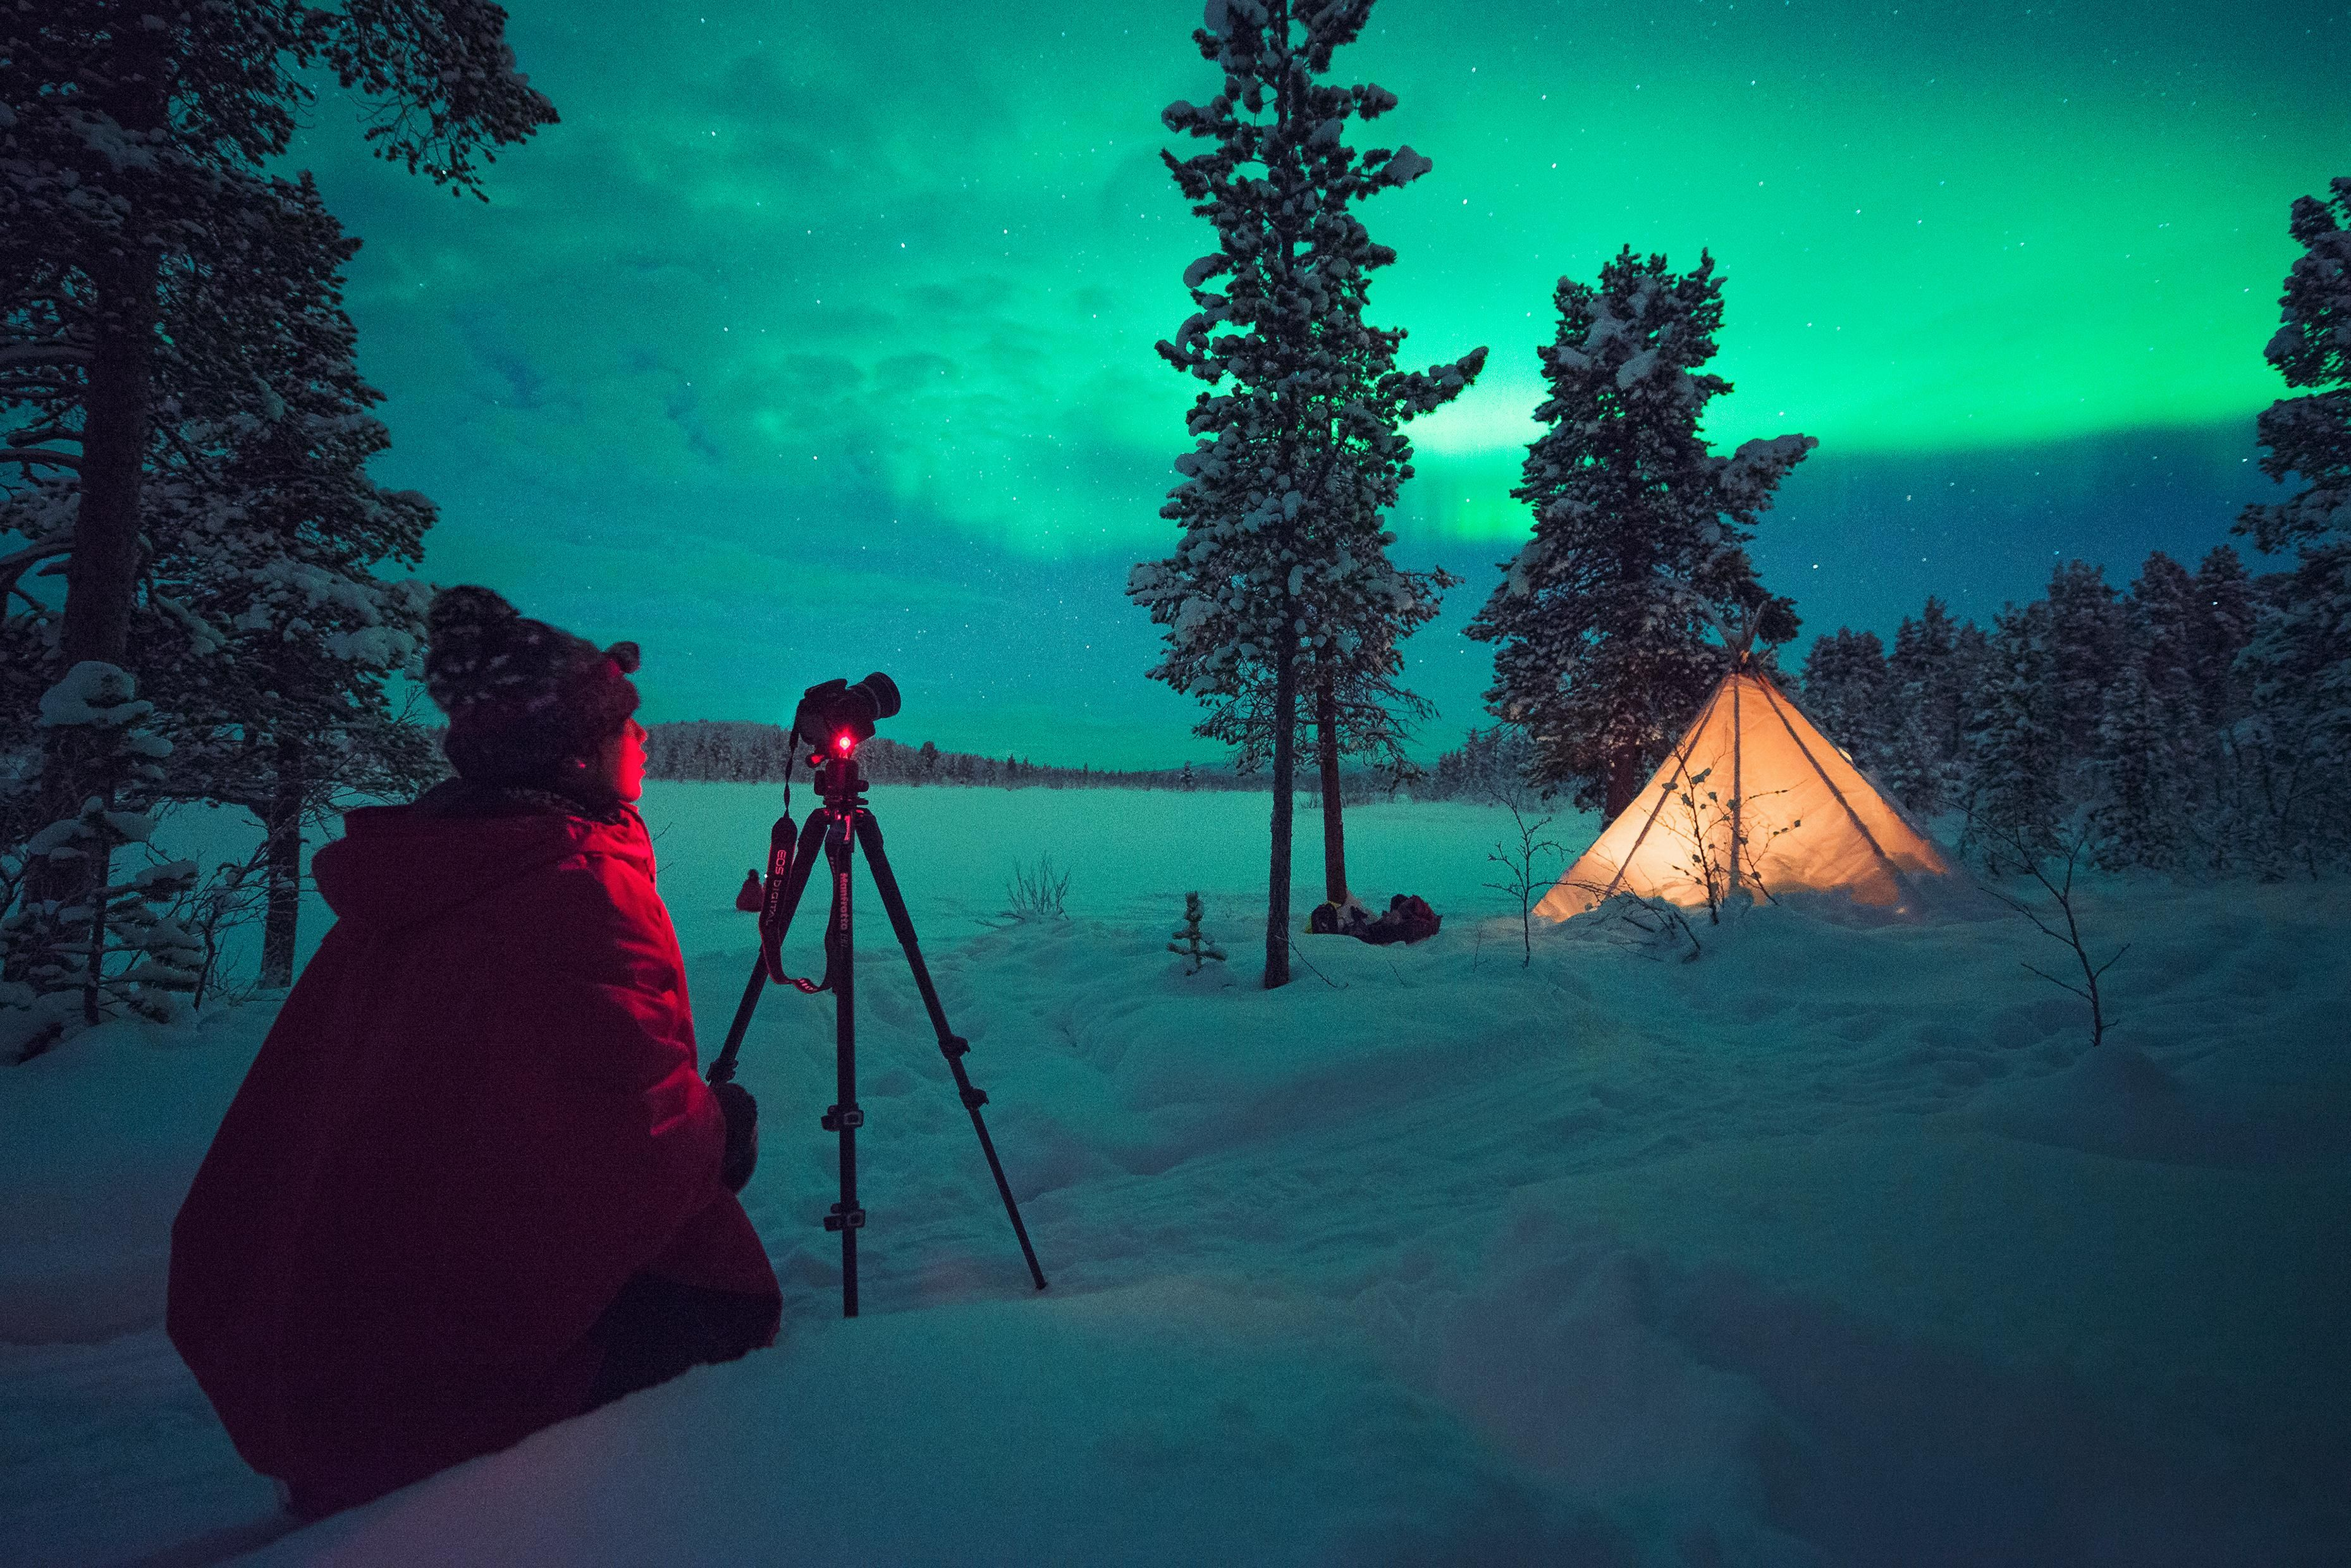 Two Sámi women, Ylva Sarri and Anette Niia, run photography tours in Kiruna, in the north of the country. Anette is a photographer and Ylva is a nature and mountain guide – and they know the best spots for auroral shots, and teach the basics of capturing the northern lights.